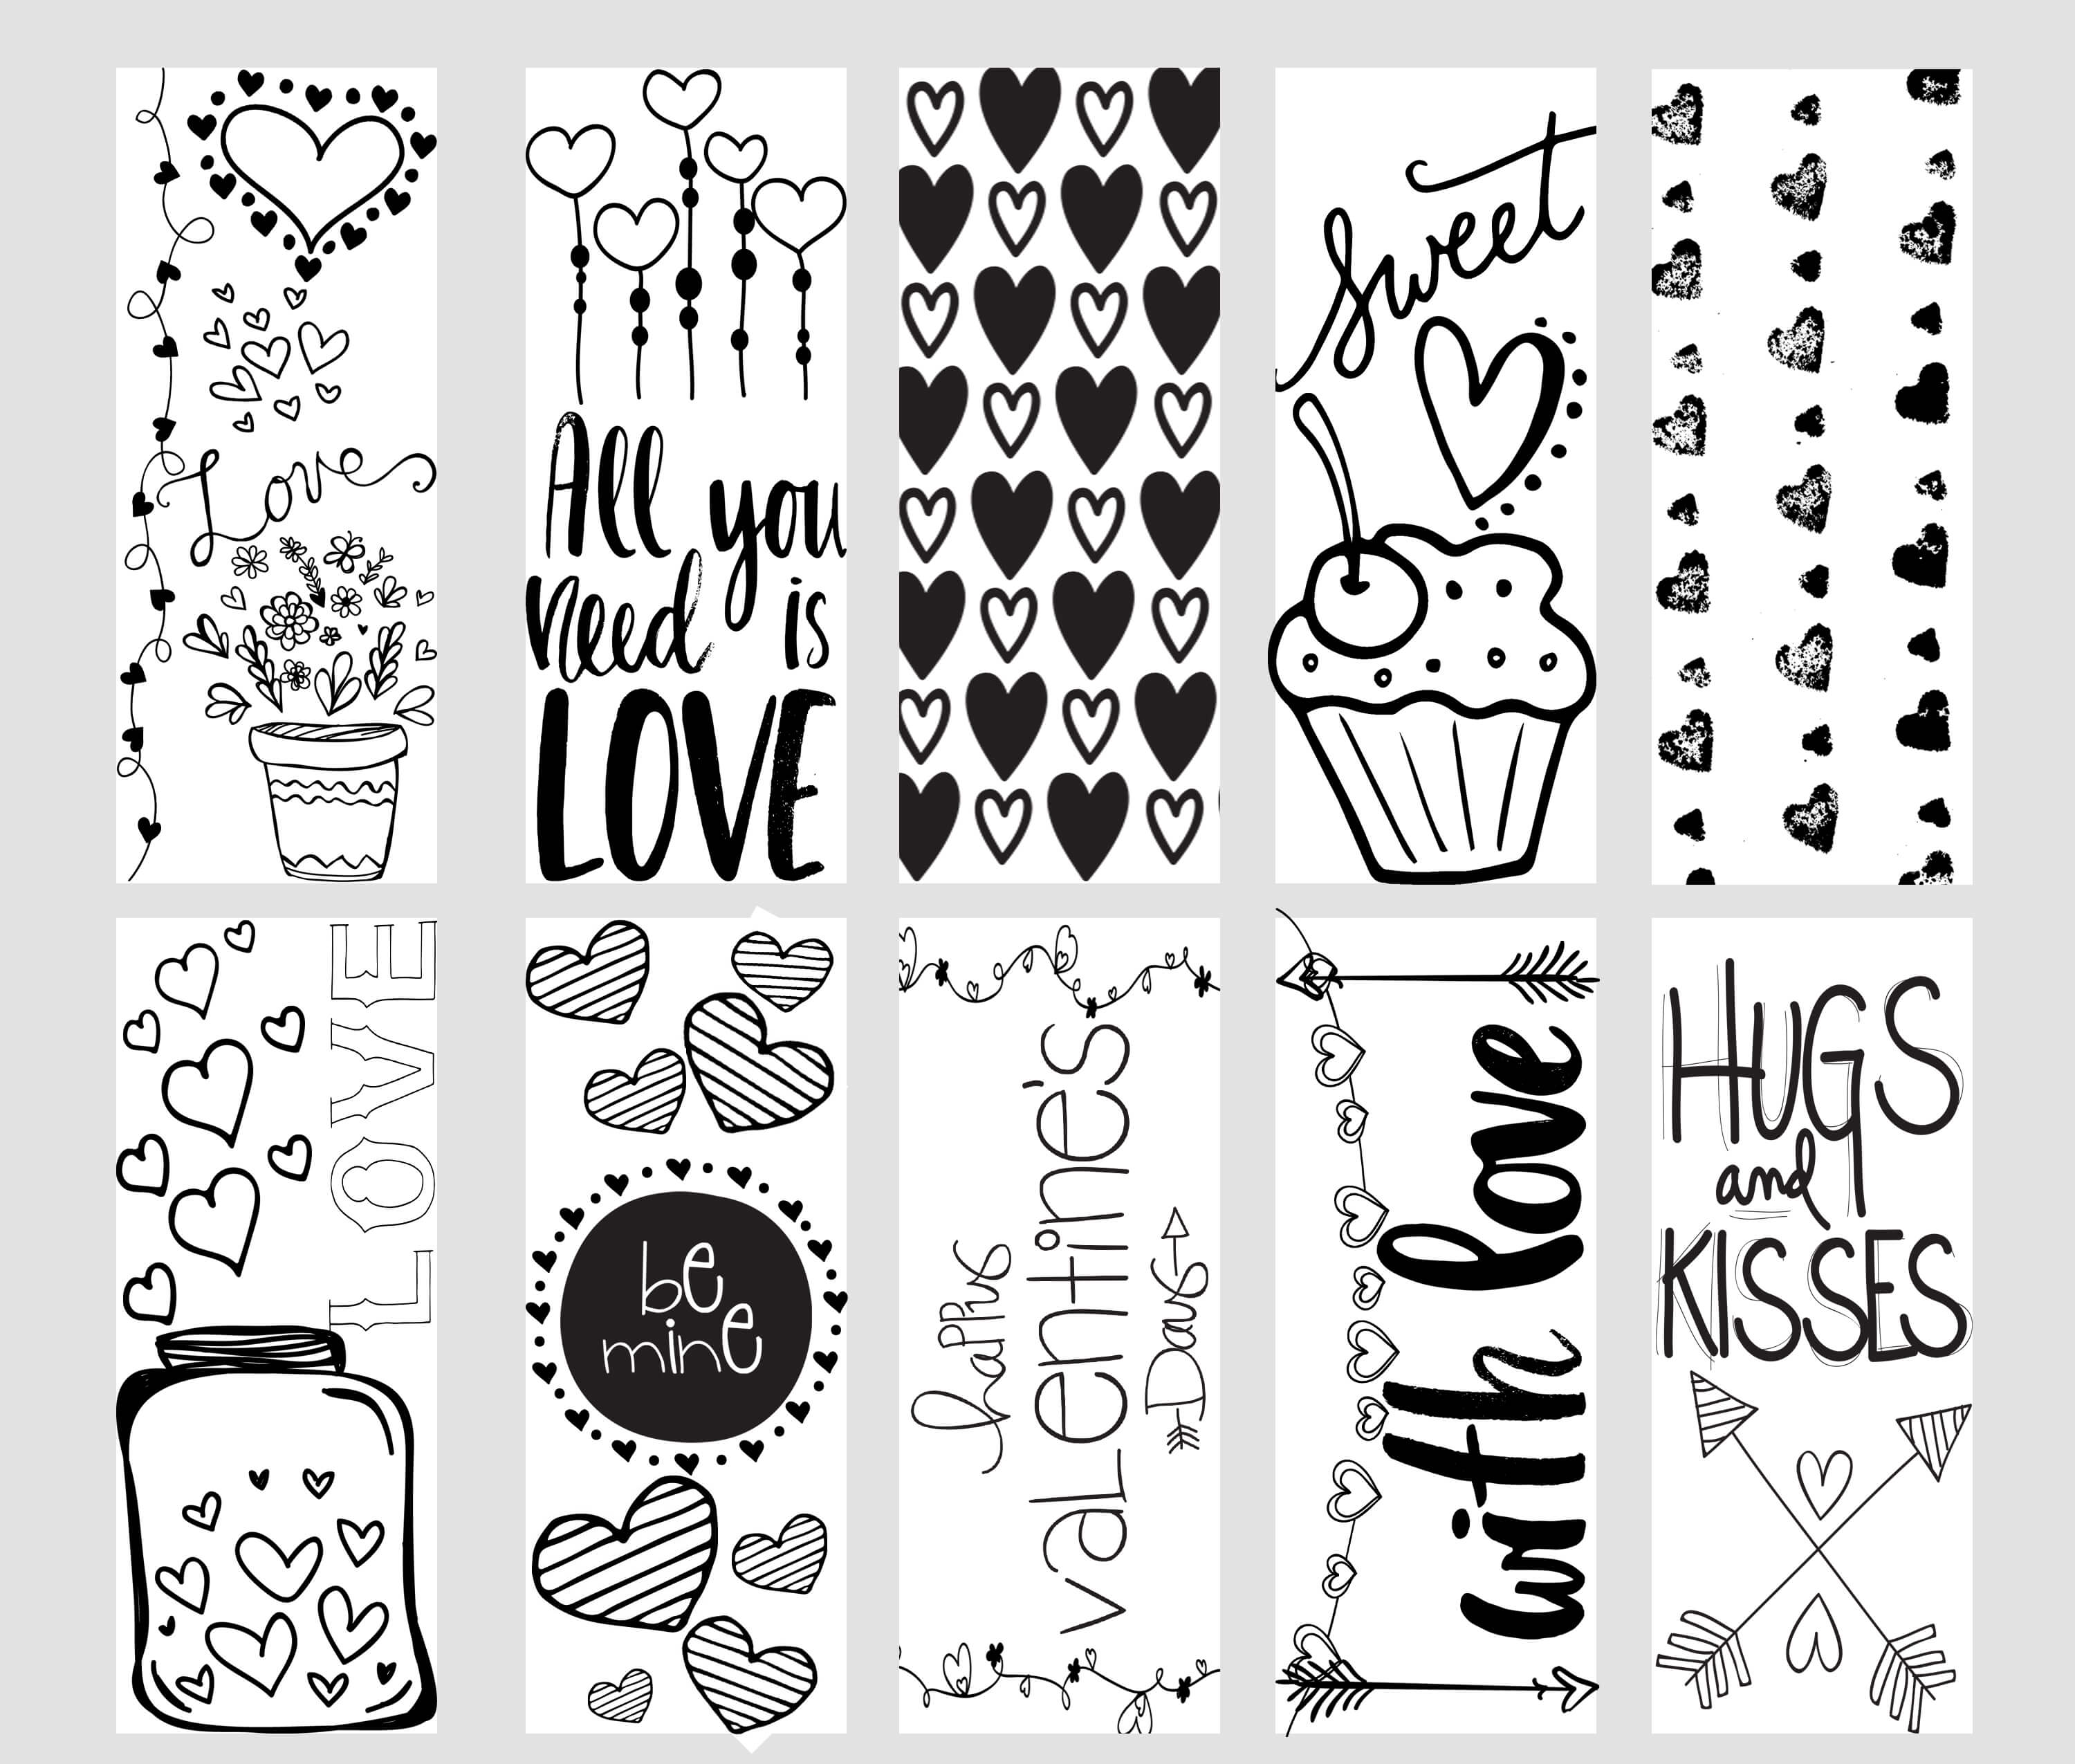 Valentine Printable Coloring Page Bookmarks Kleinworth & Co